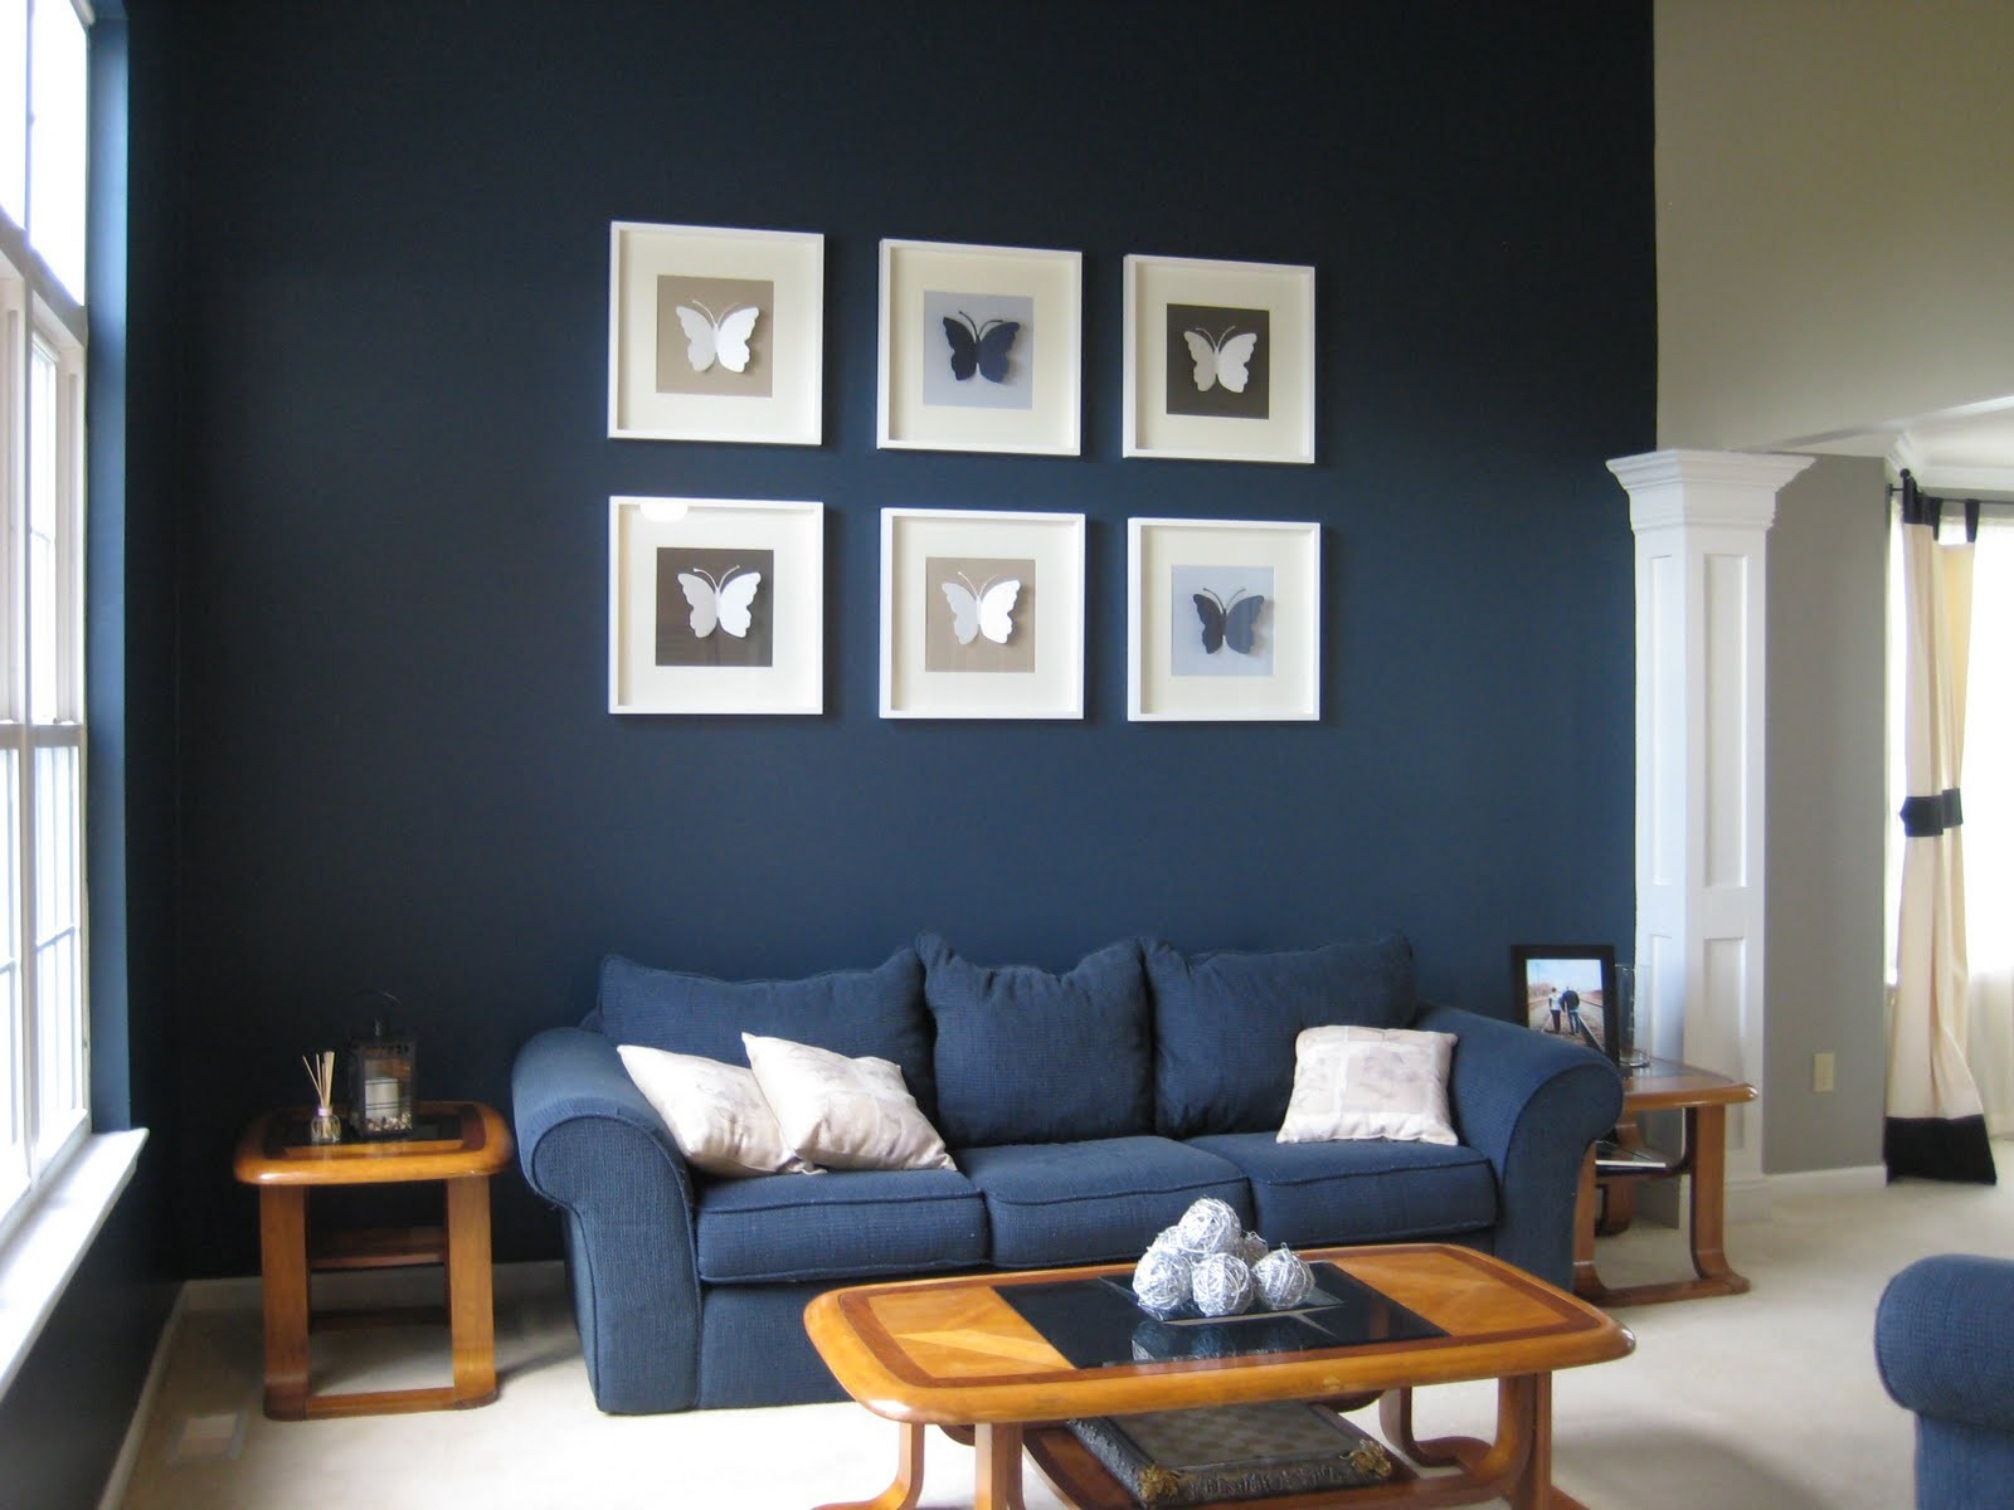 Dark Blue Living Room Walls With Butterflies Mounted